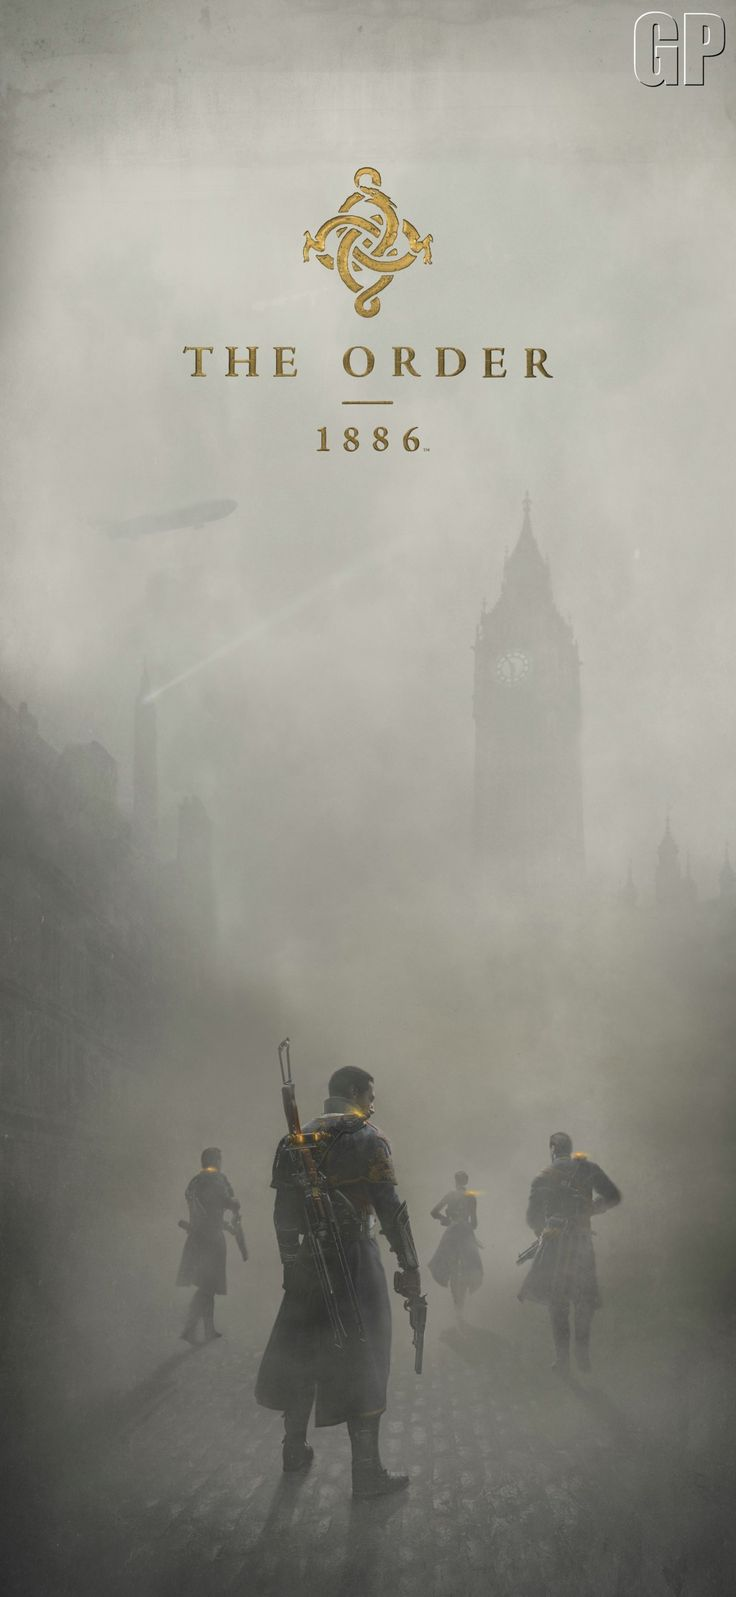 The Order: 1886 (2015). Yes, I know this game has mixed reviews, but I loved it. Though I understand the criticisms about it being more of a movie, as a writer, it was highly inspiring.